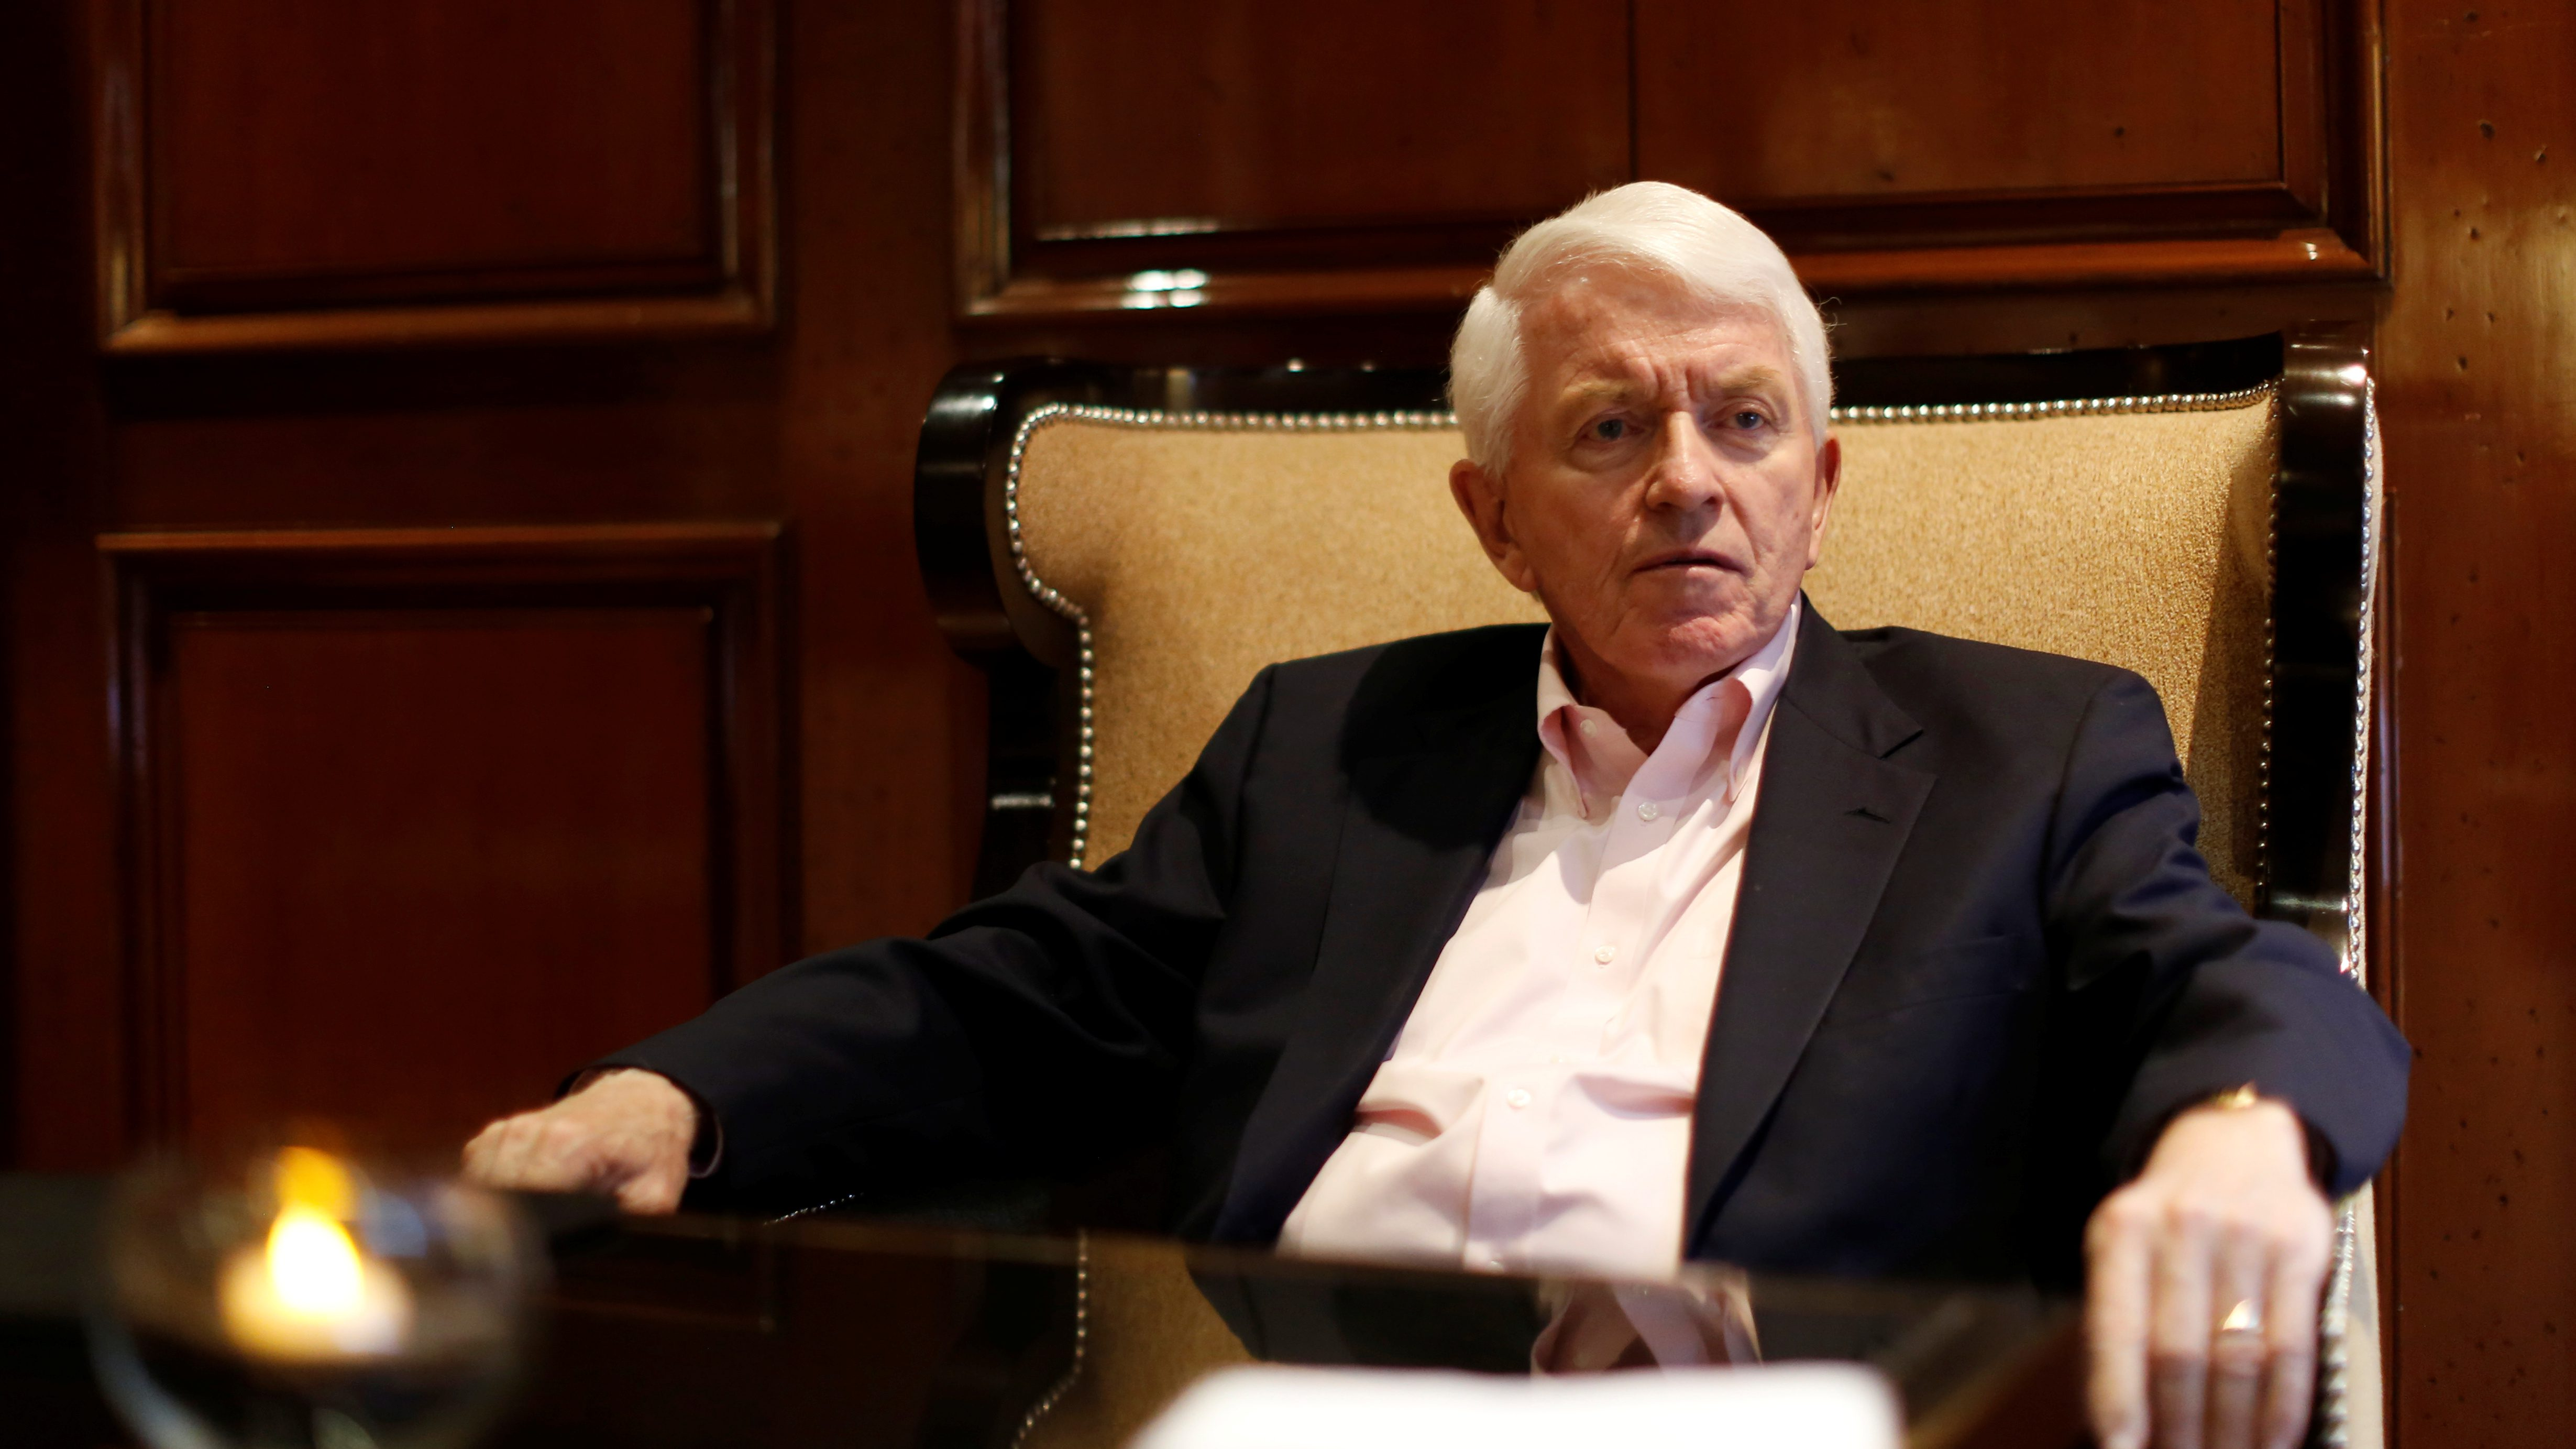 Tom Donohue, President of U.S. chamber of Commerce, gestures during an interview with Reuters in Mexico City, Mexico April 23, 2017.  REUTERS/Carlos Jasso - RTS13MD6